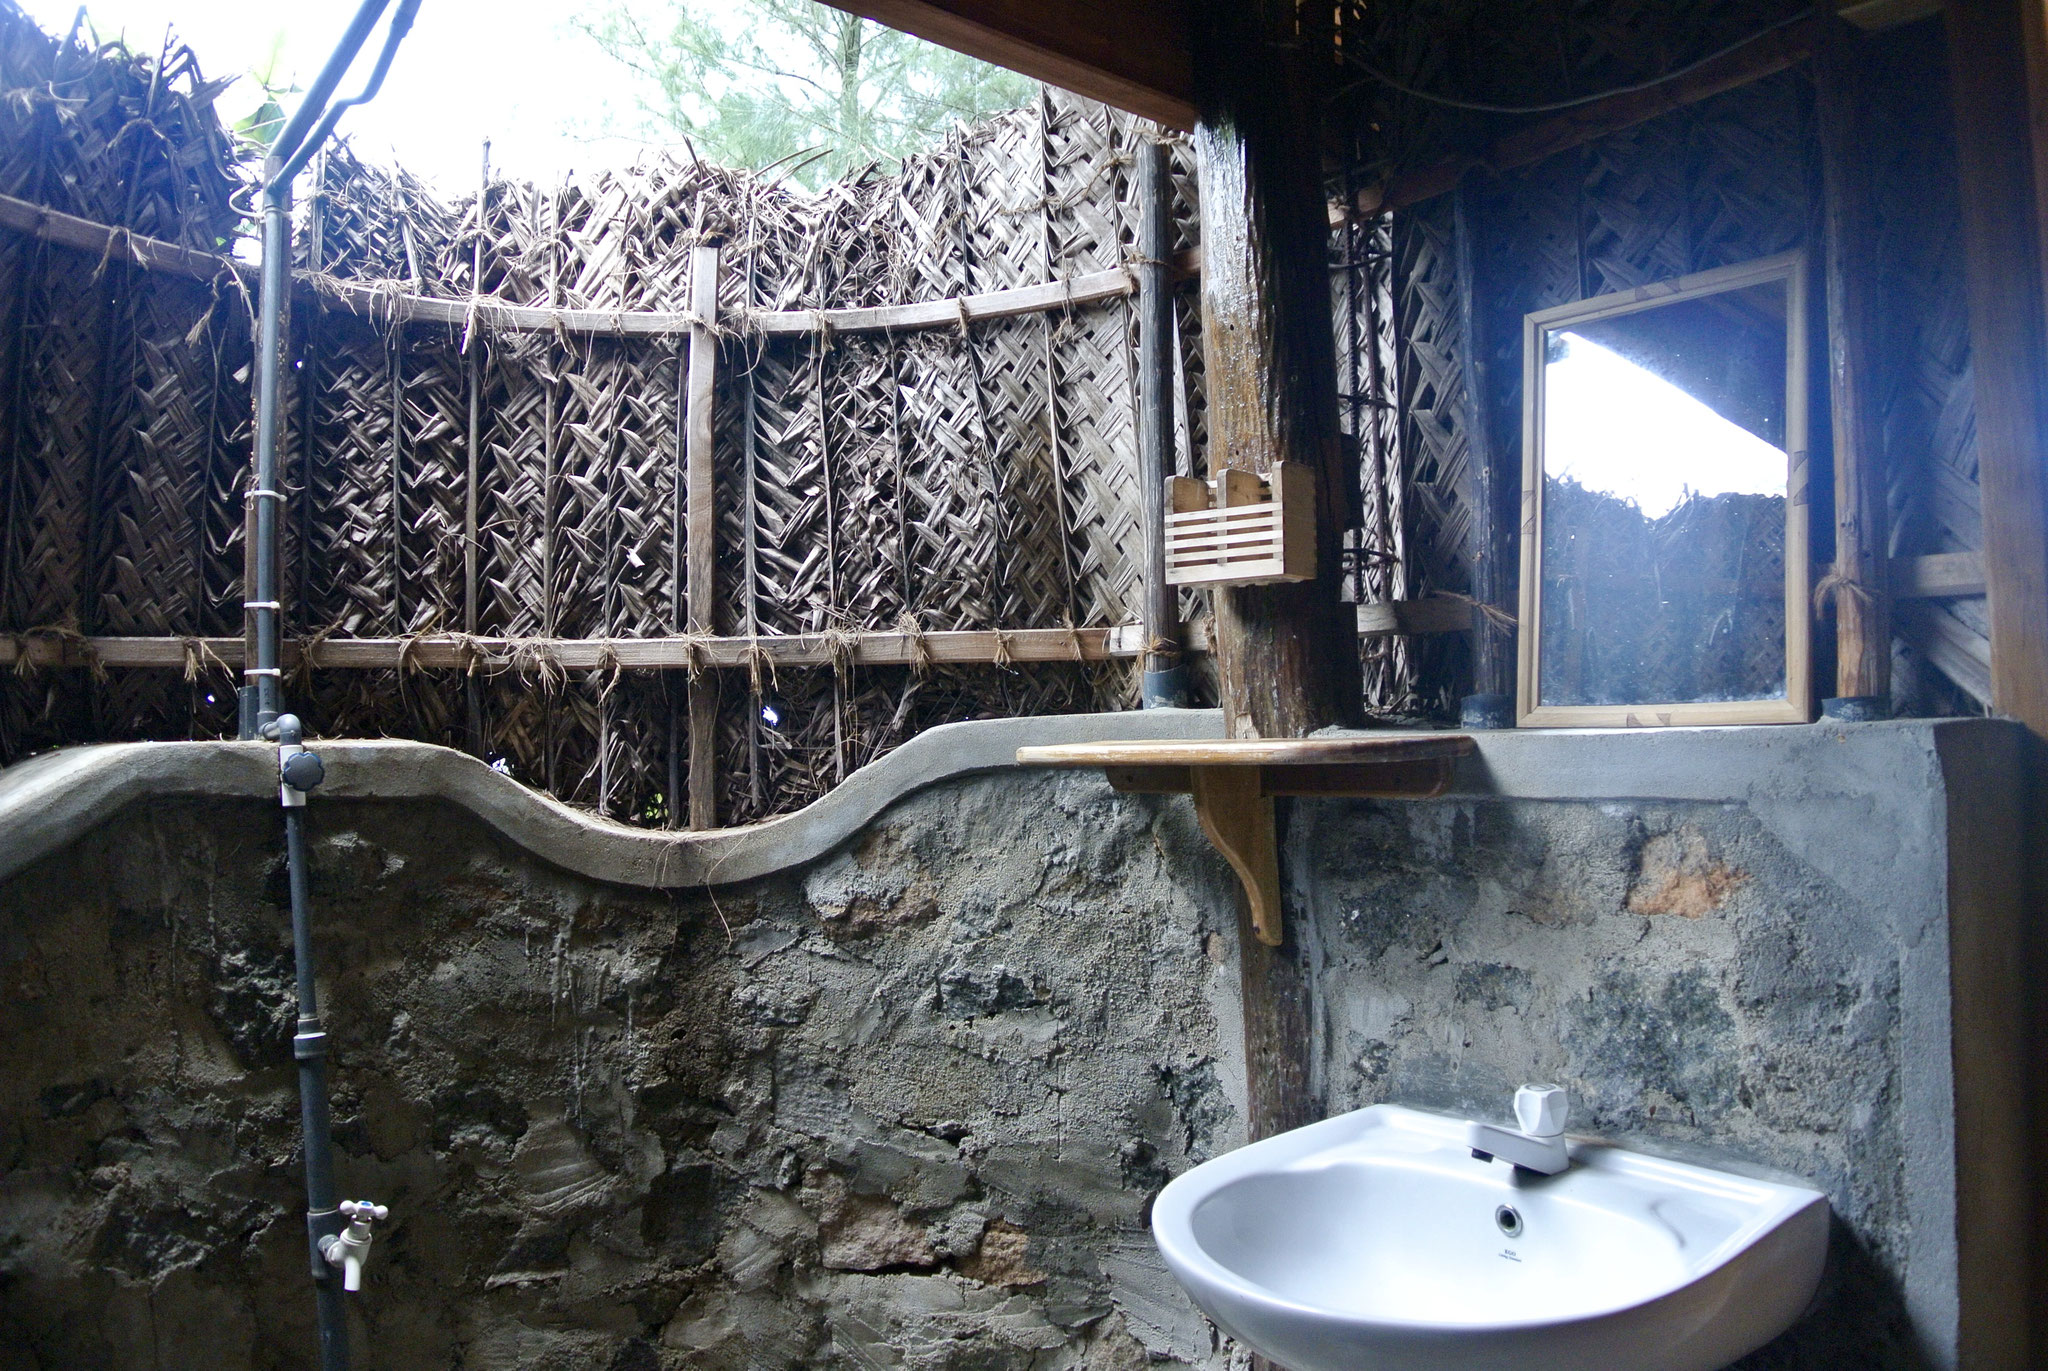 The Miro Cabana / Open Air Bathroom